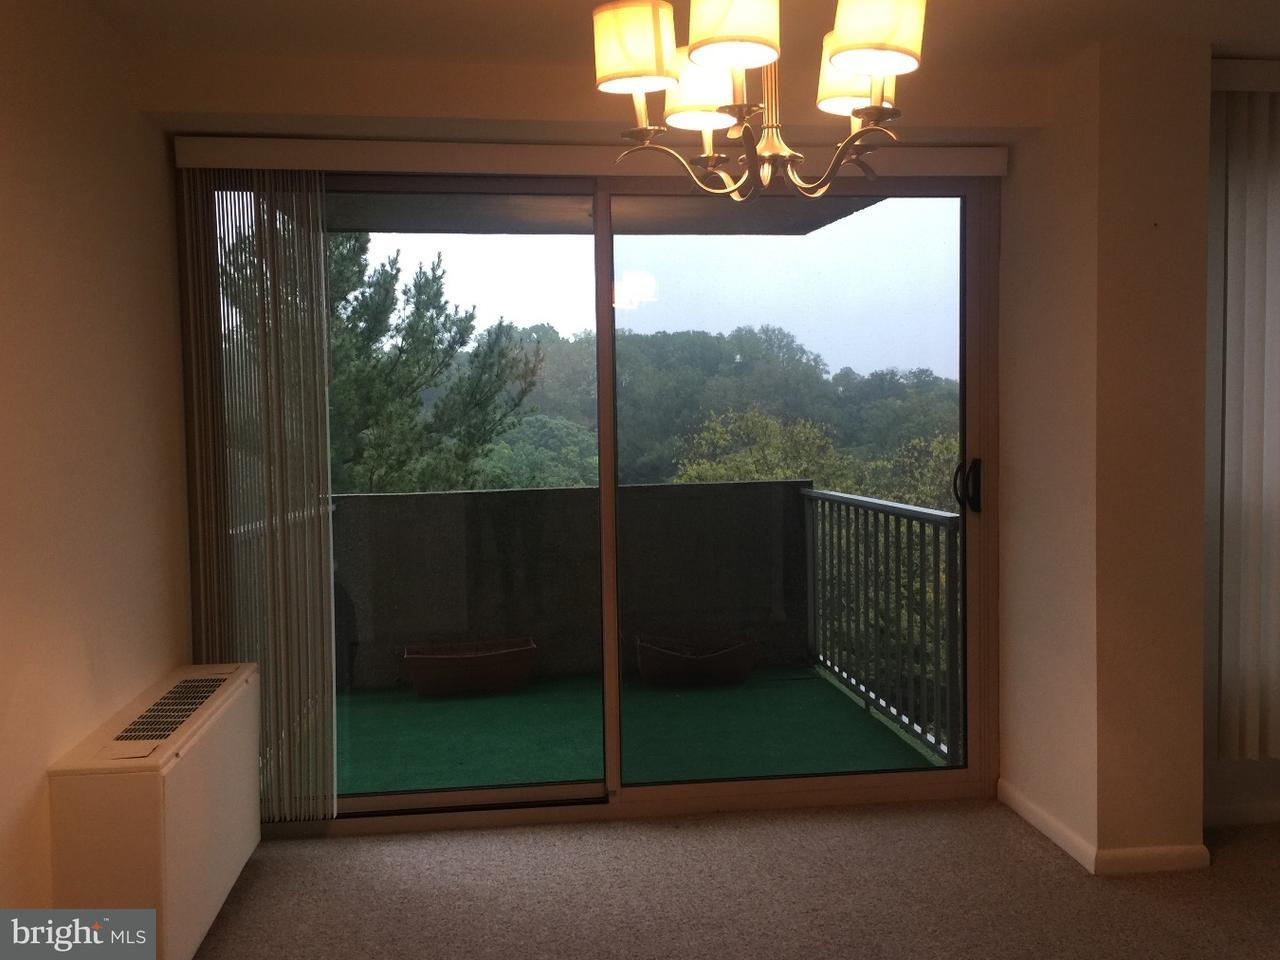 Additional photo for property listing at 1001 CITY AVE #WB815  Wynnewood, Pennsylvania 19096 Estados Unidos